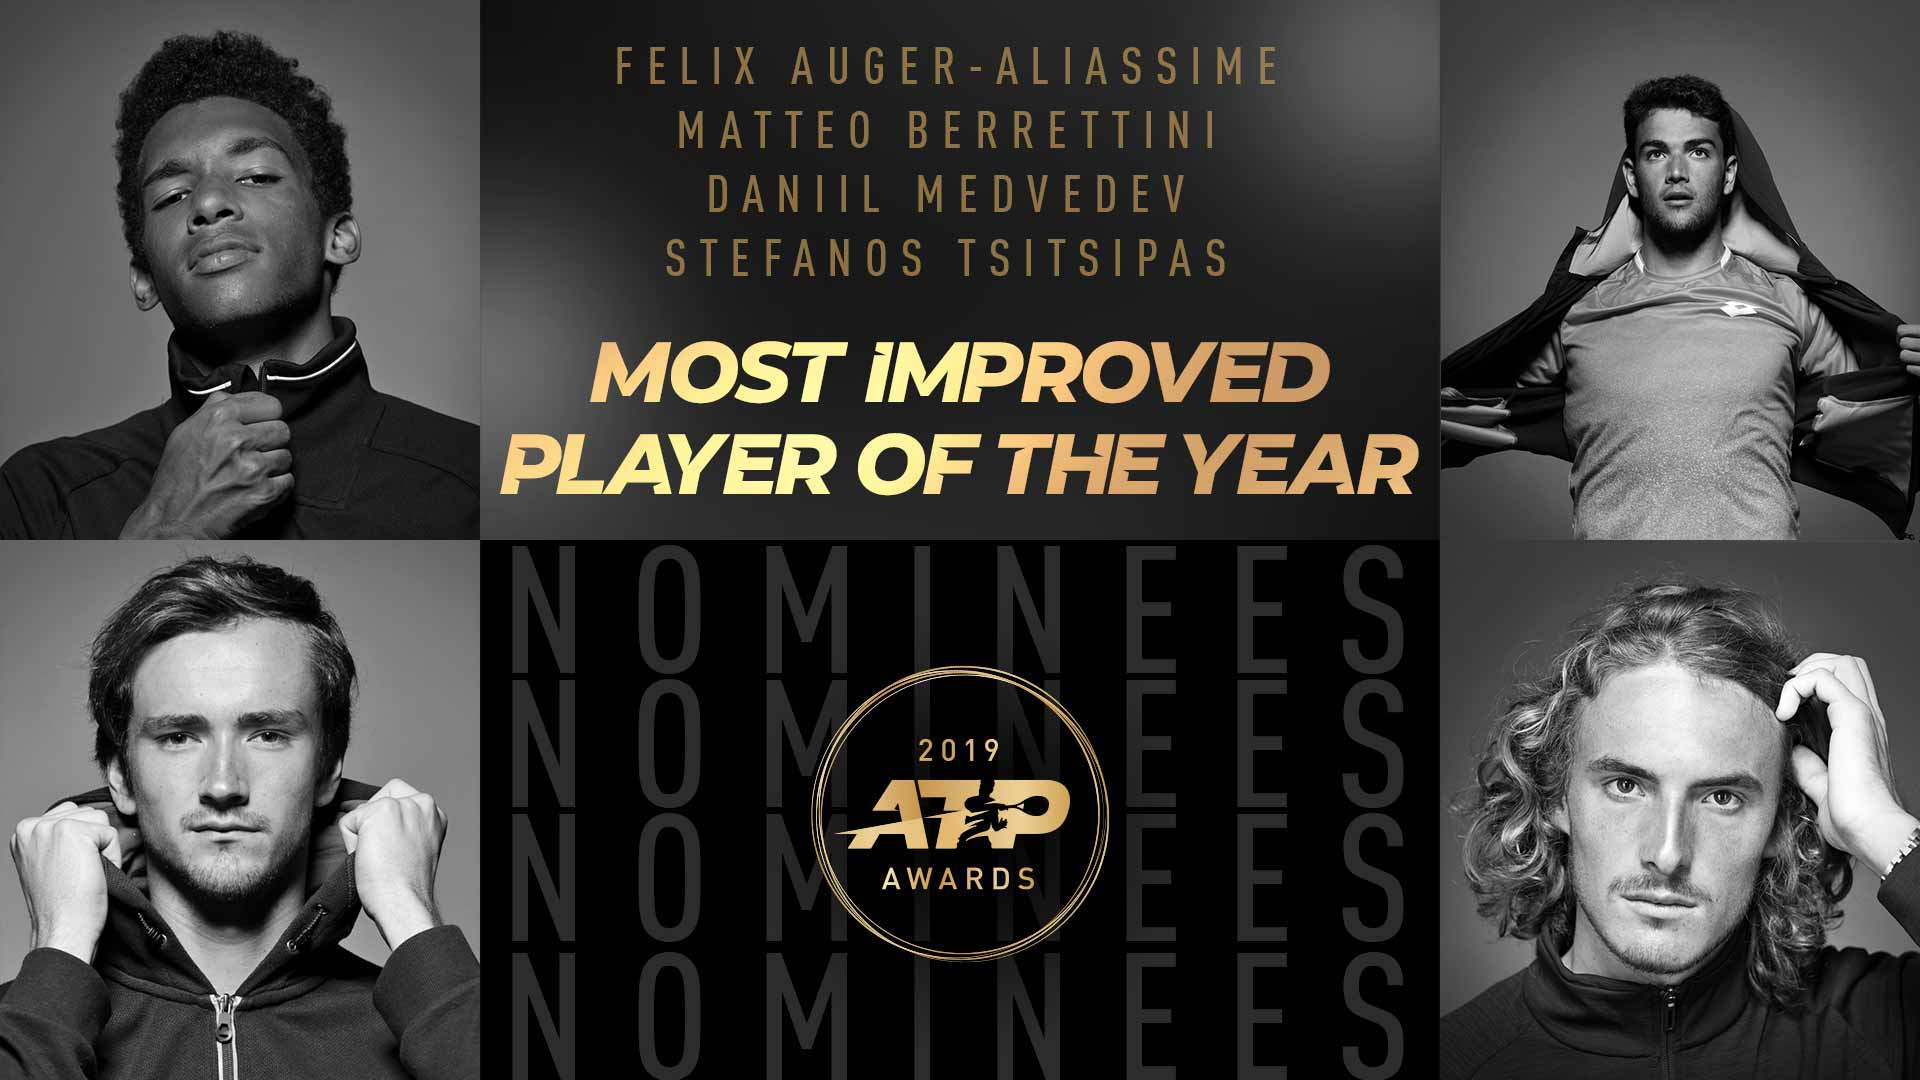 Felix Auger-Aliassime, Matteo Berrettini, Daniil Medvedev, Stefanos Tsitsipas | Most Improved Player Of The Year Nominees | 2019 ATP Awards